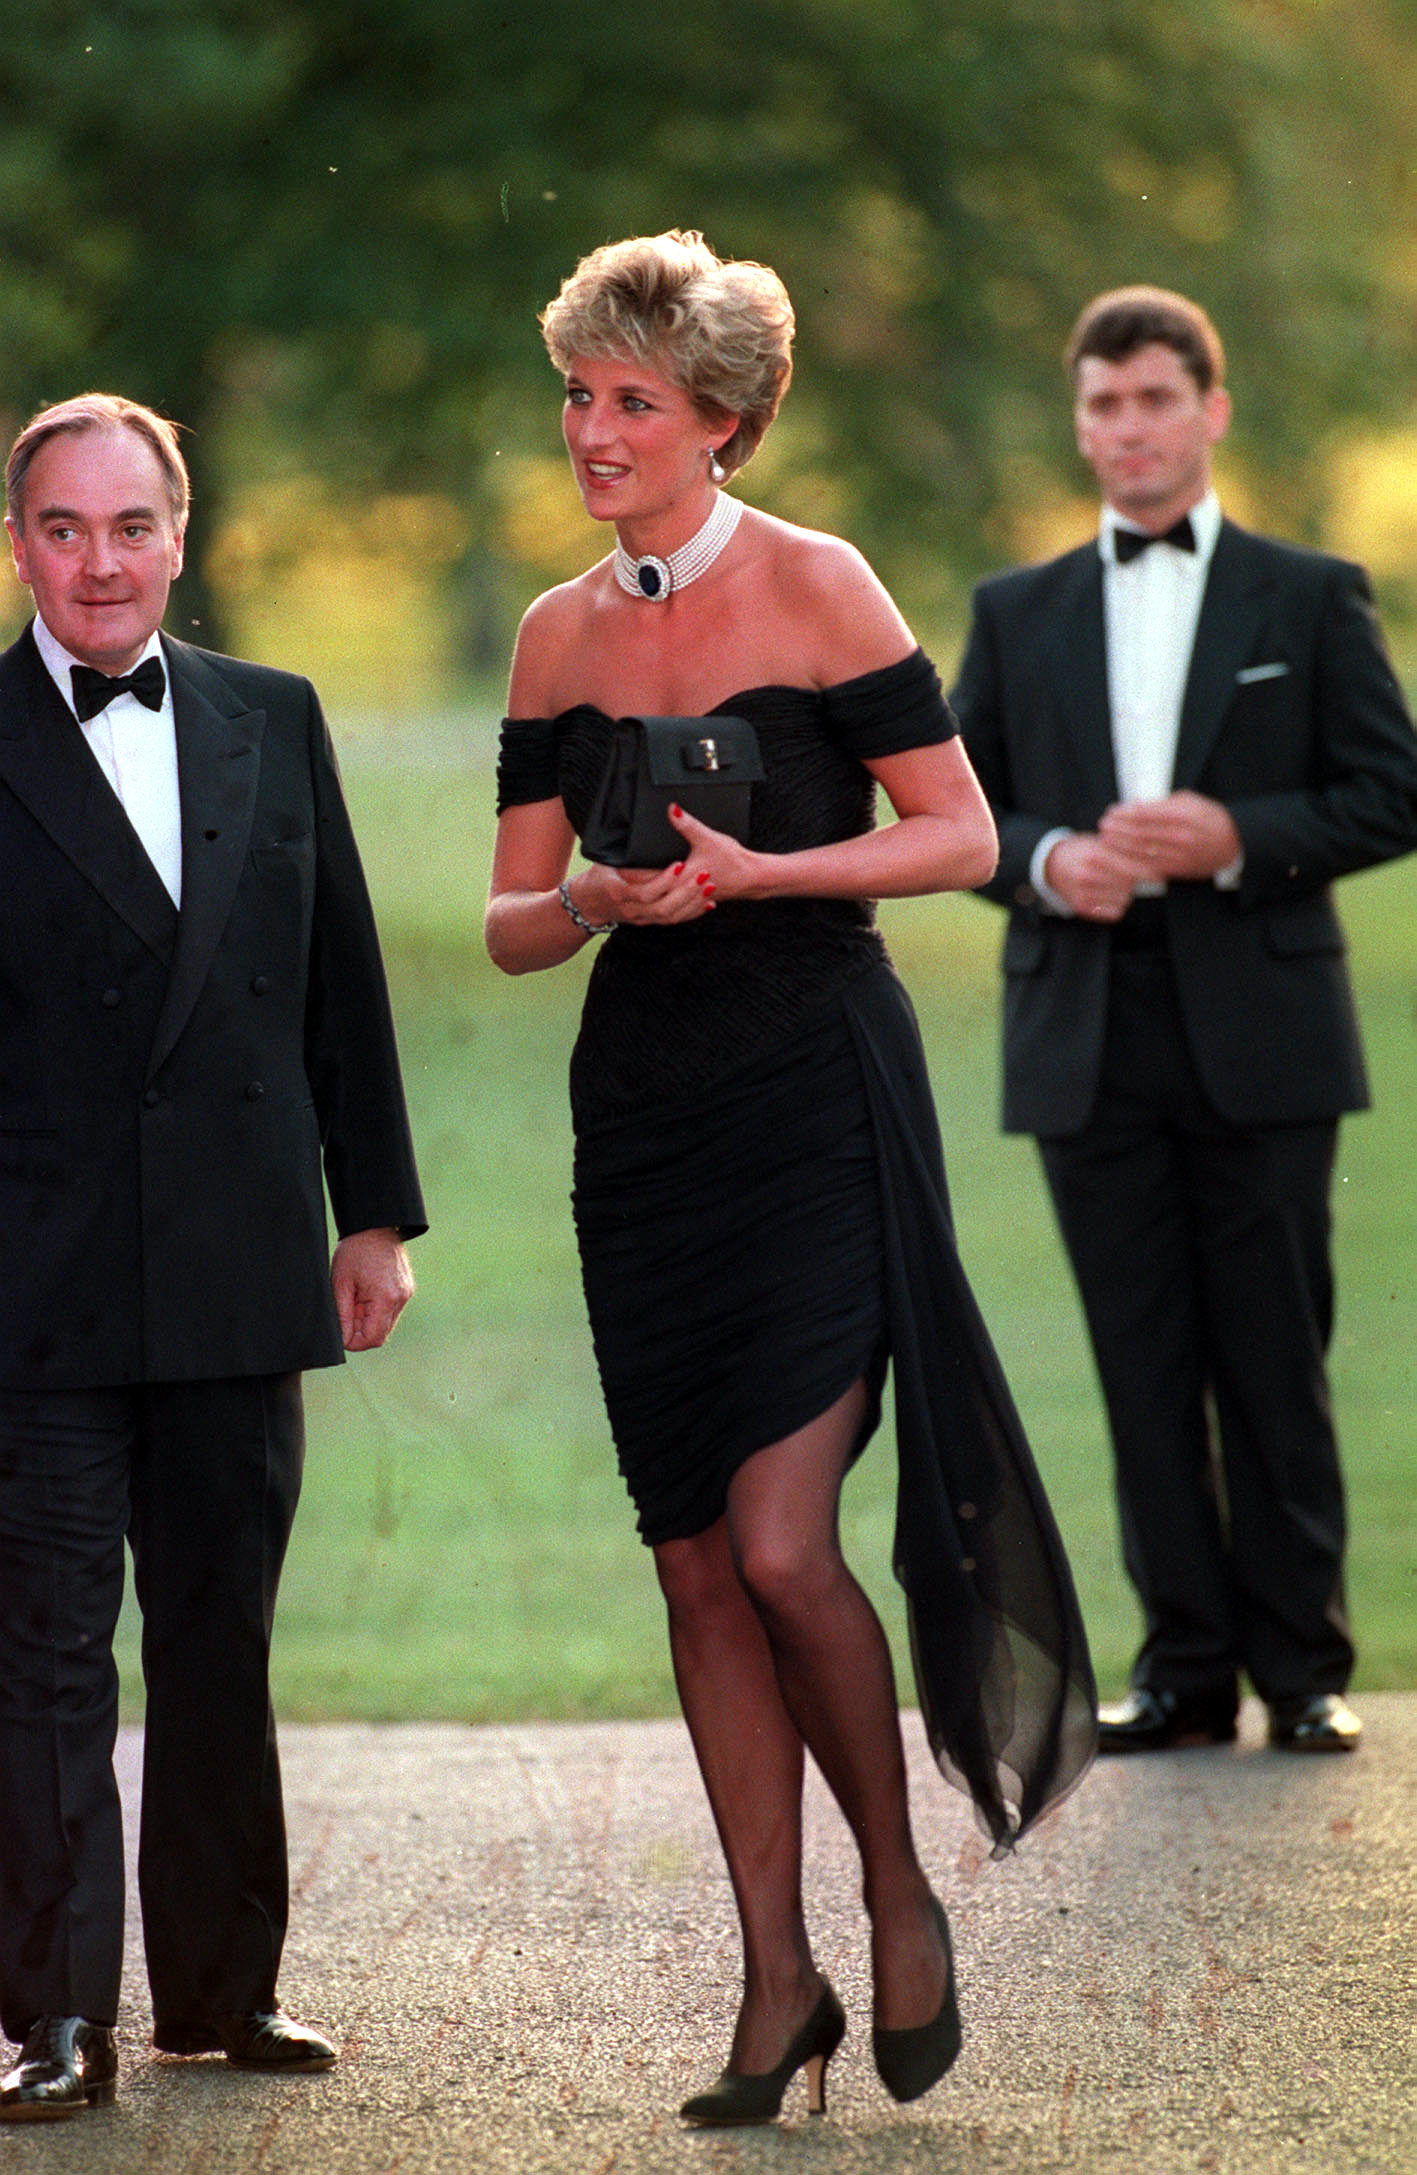 """File photo dated 29/6/1994 of the Princess of Wales arriving at the Serpentine Gallery in London's Hyde Park to attend a gala dinner as its patron. Twenty-five years ago, the Princess of Wales stepped out in her """"revenge dress""""."""